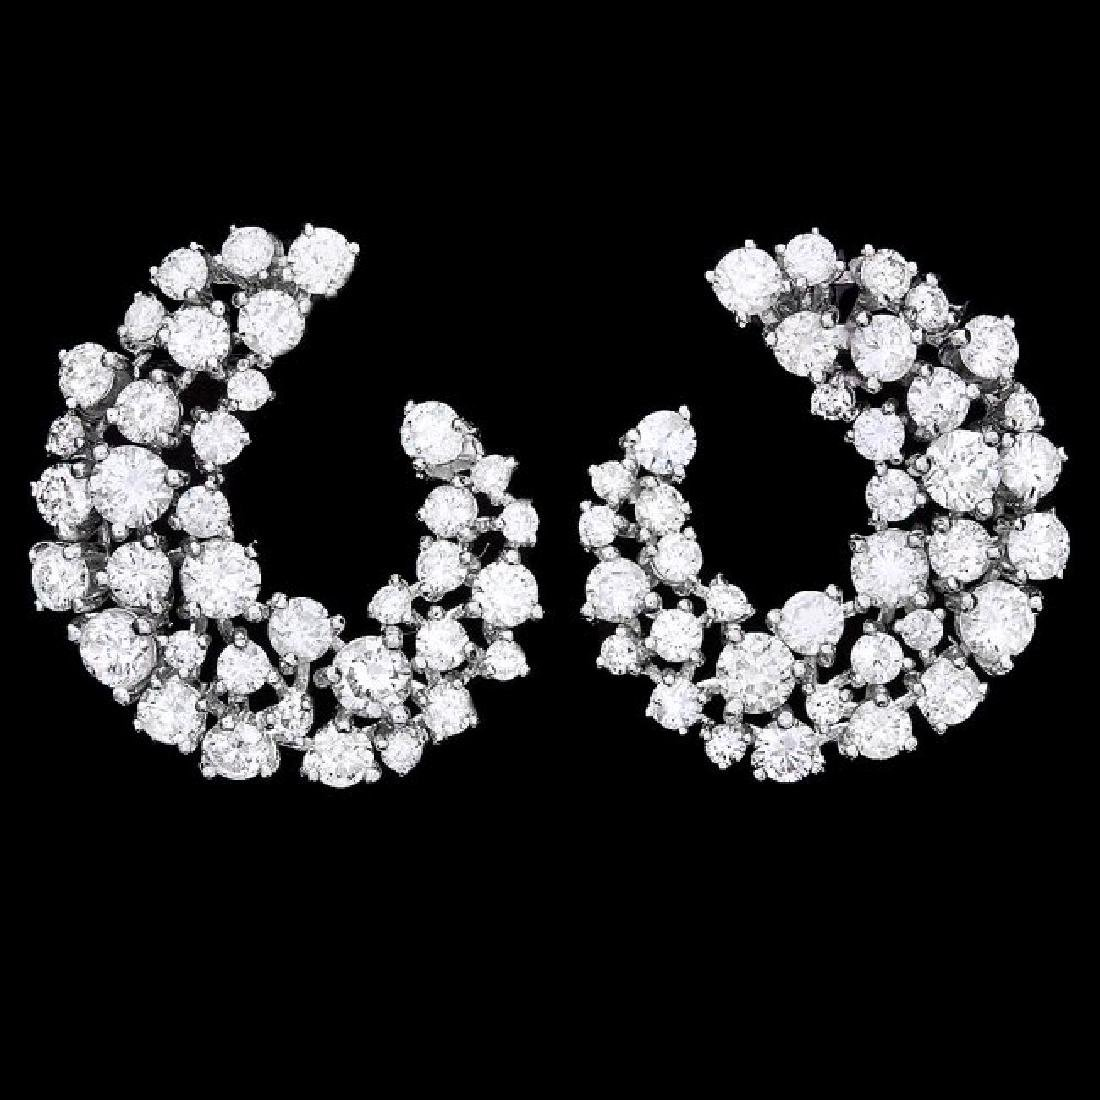 14k White Gold 4.40ct Diamond Earrings